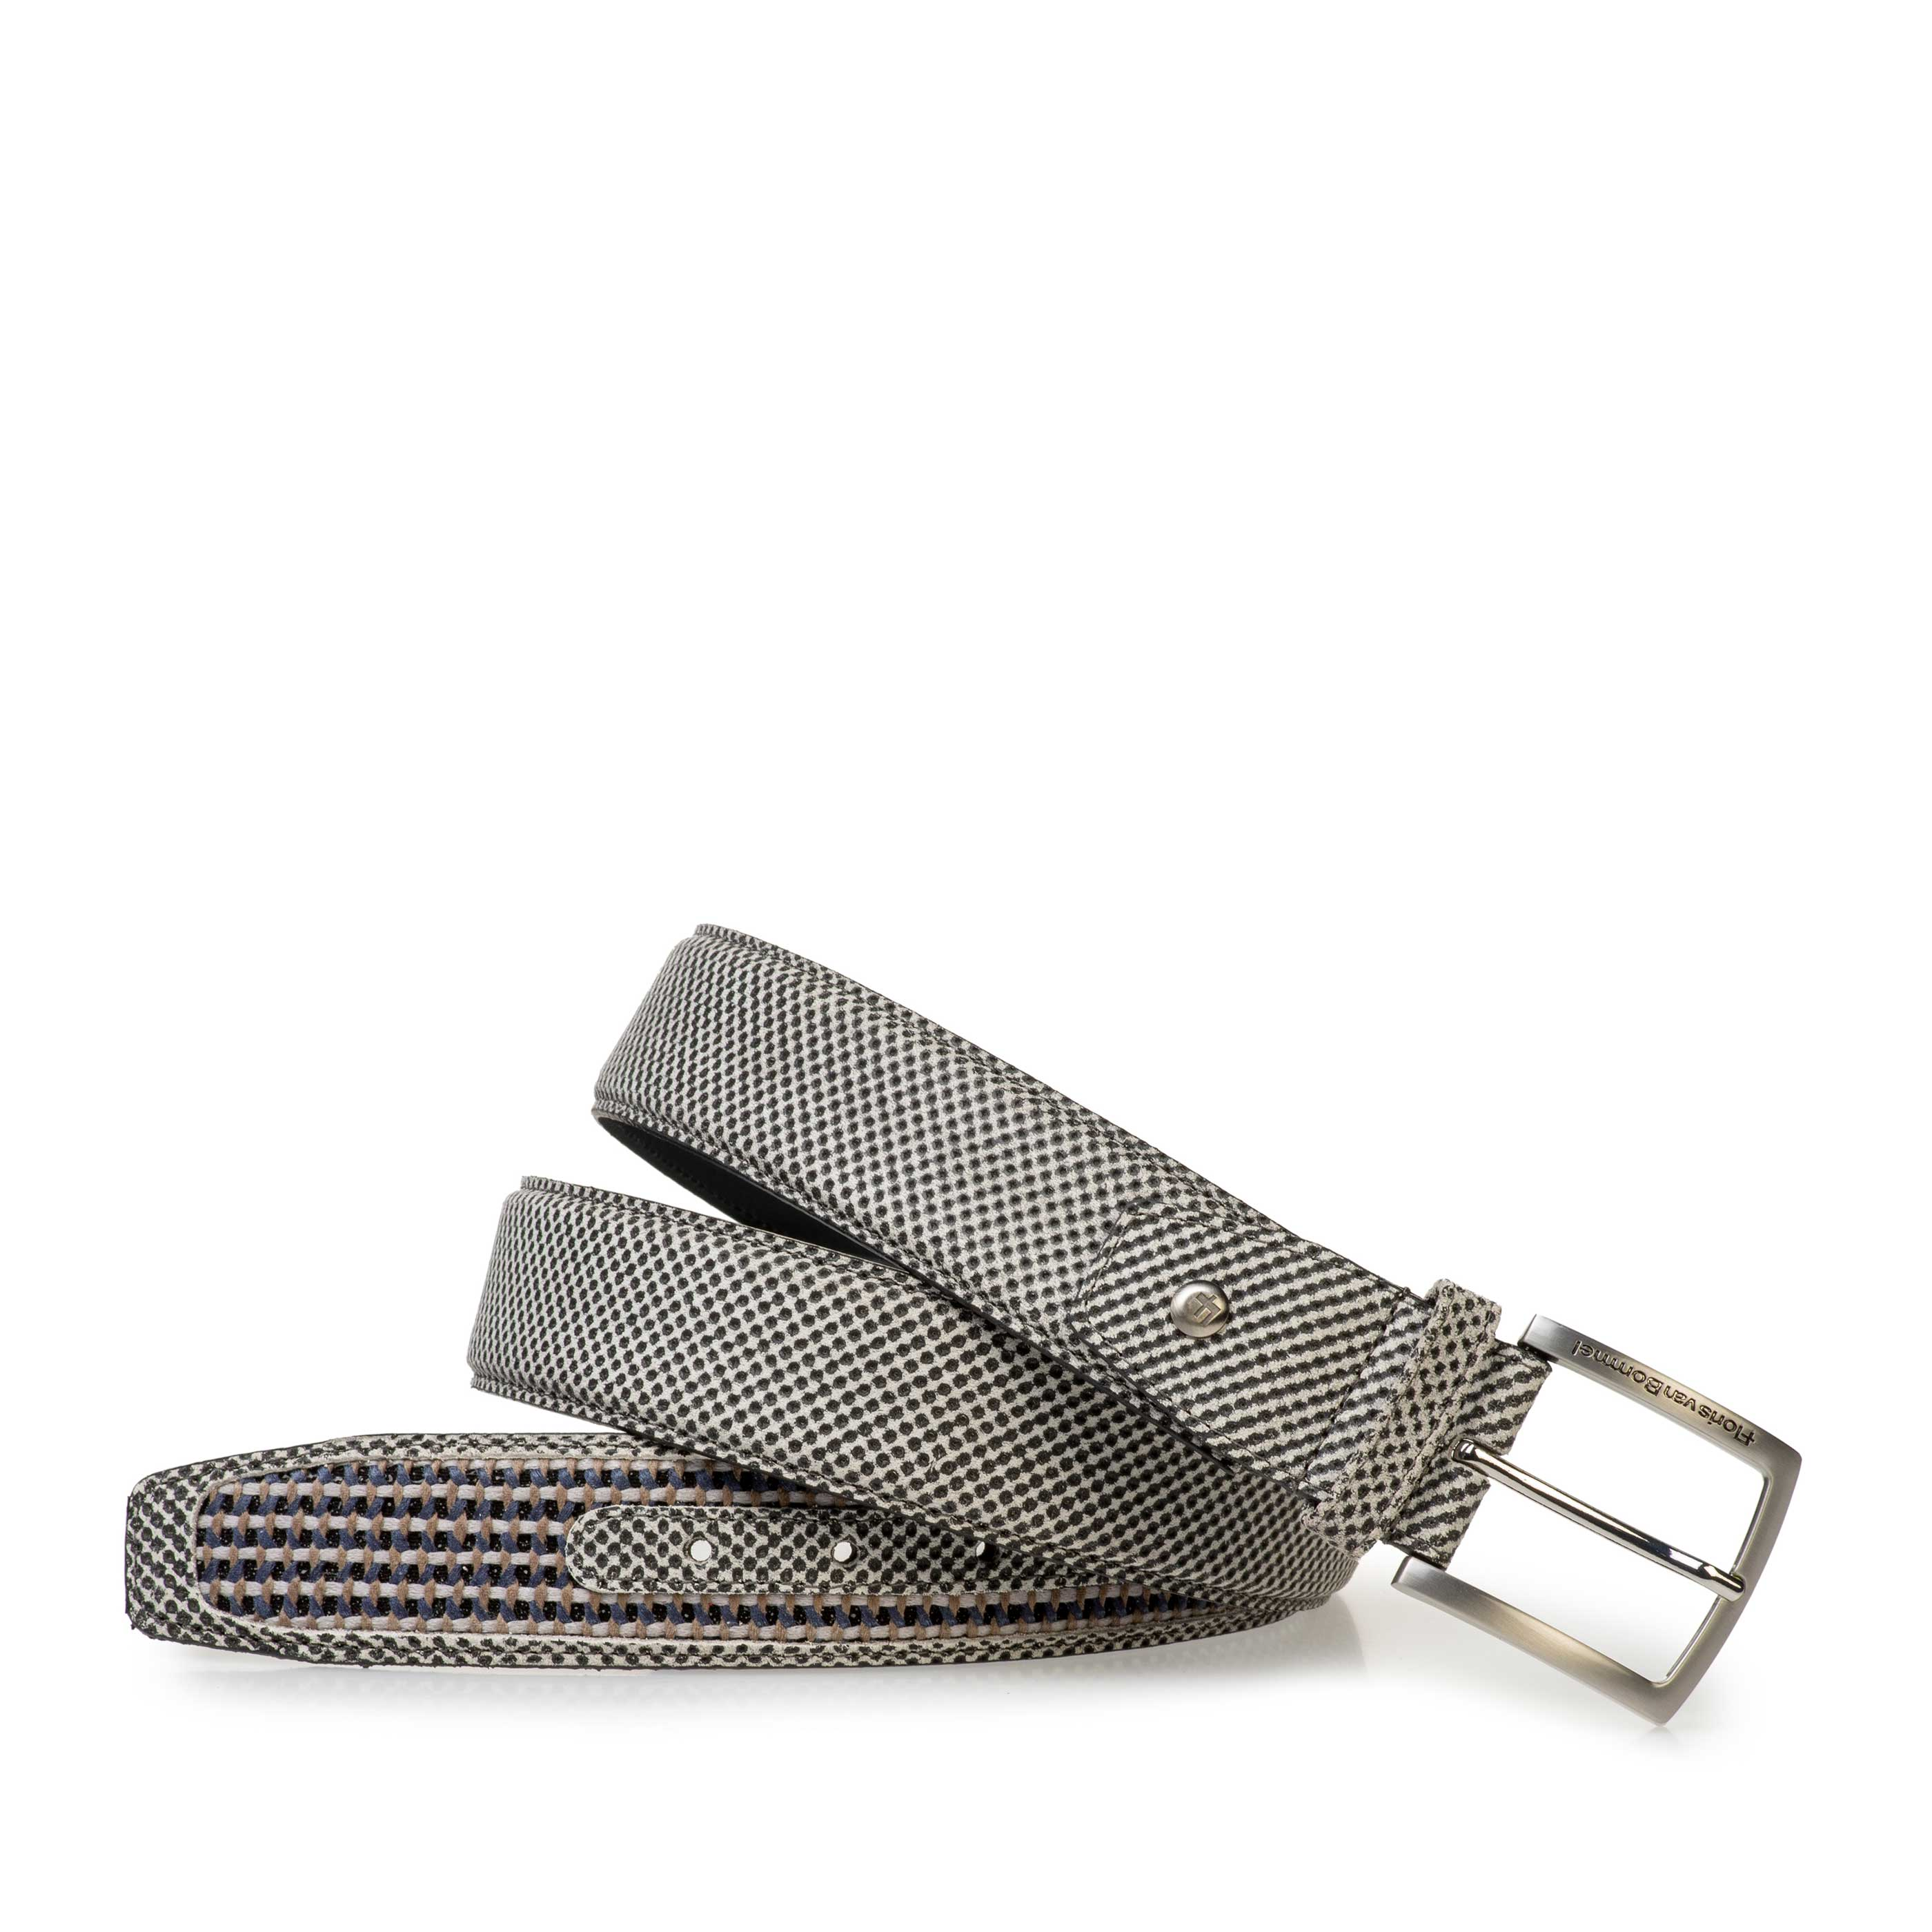 75159/35 - Grey suede leather belt with white print